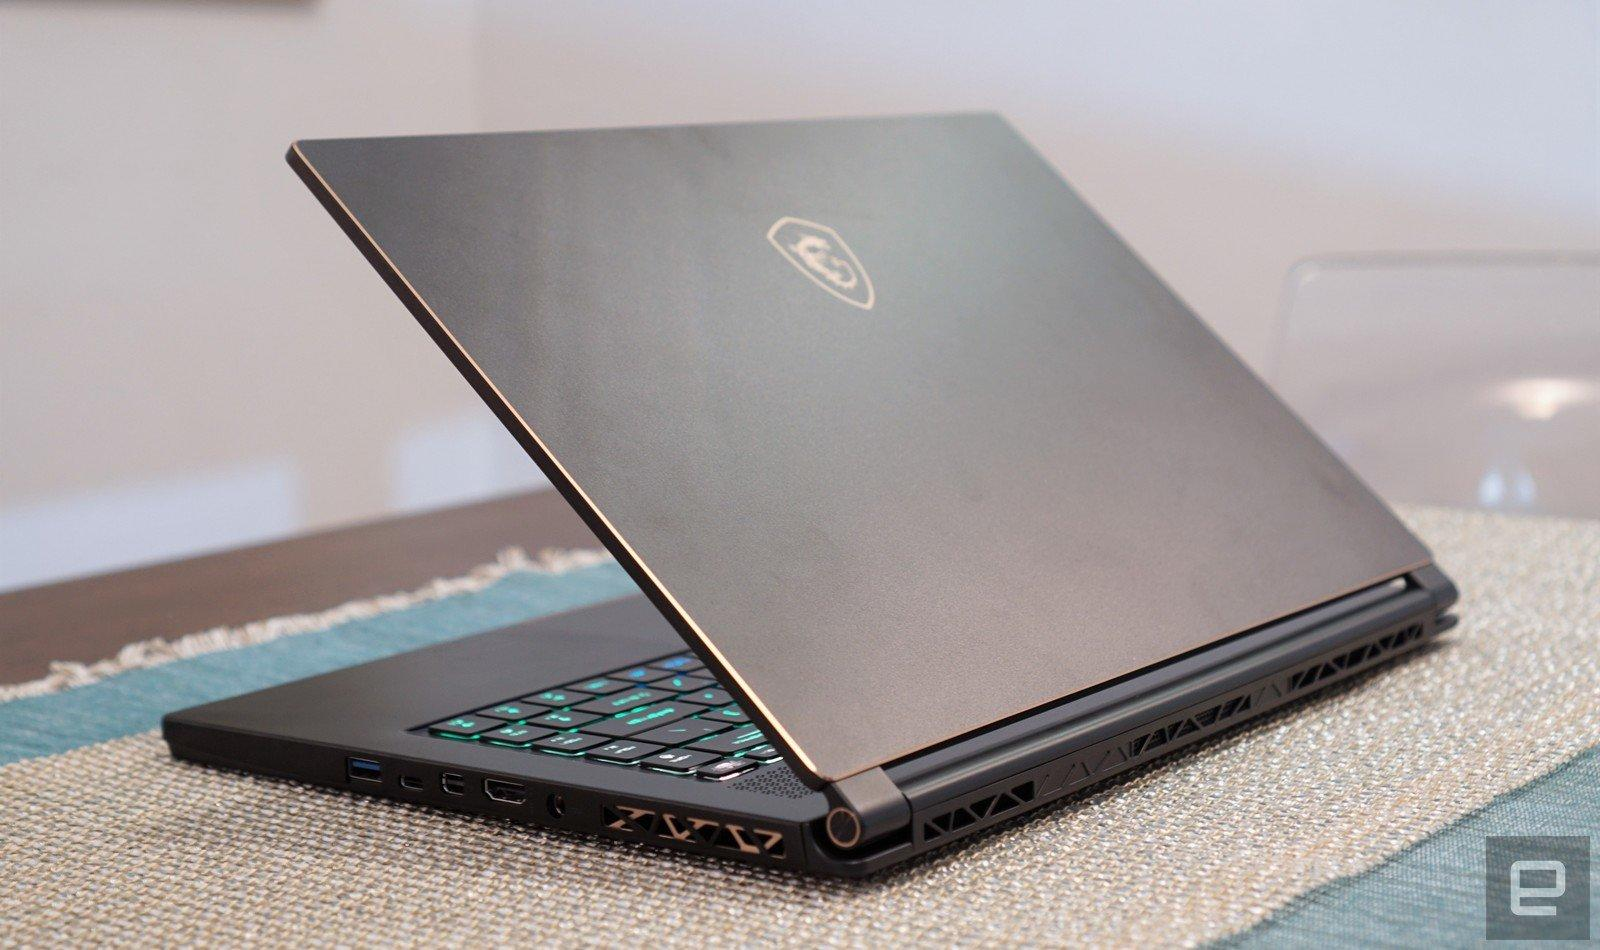 Msi Gs65 Stealth Thin Review A Milestone For Laptop Gaming Engadget